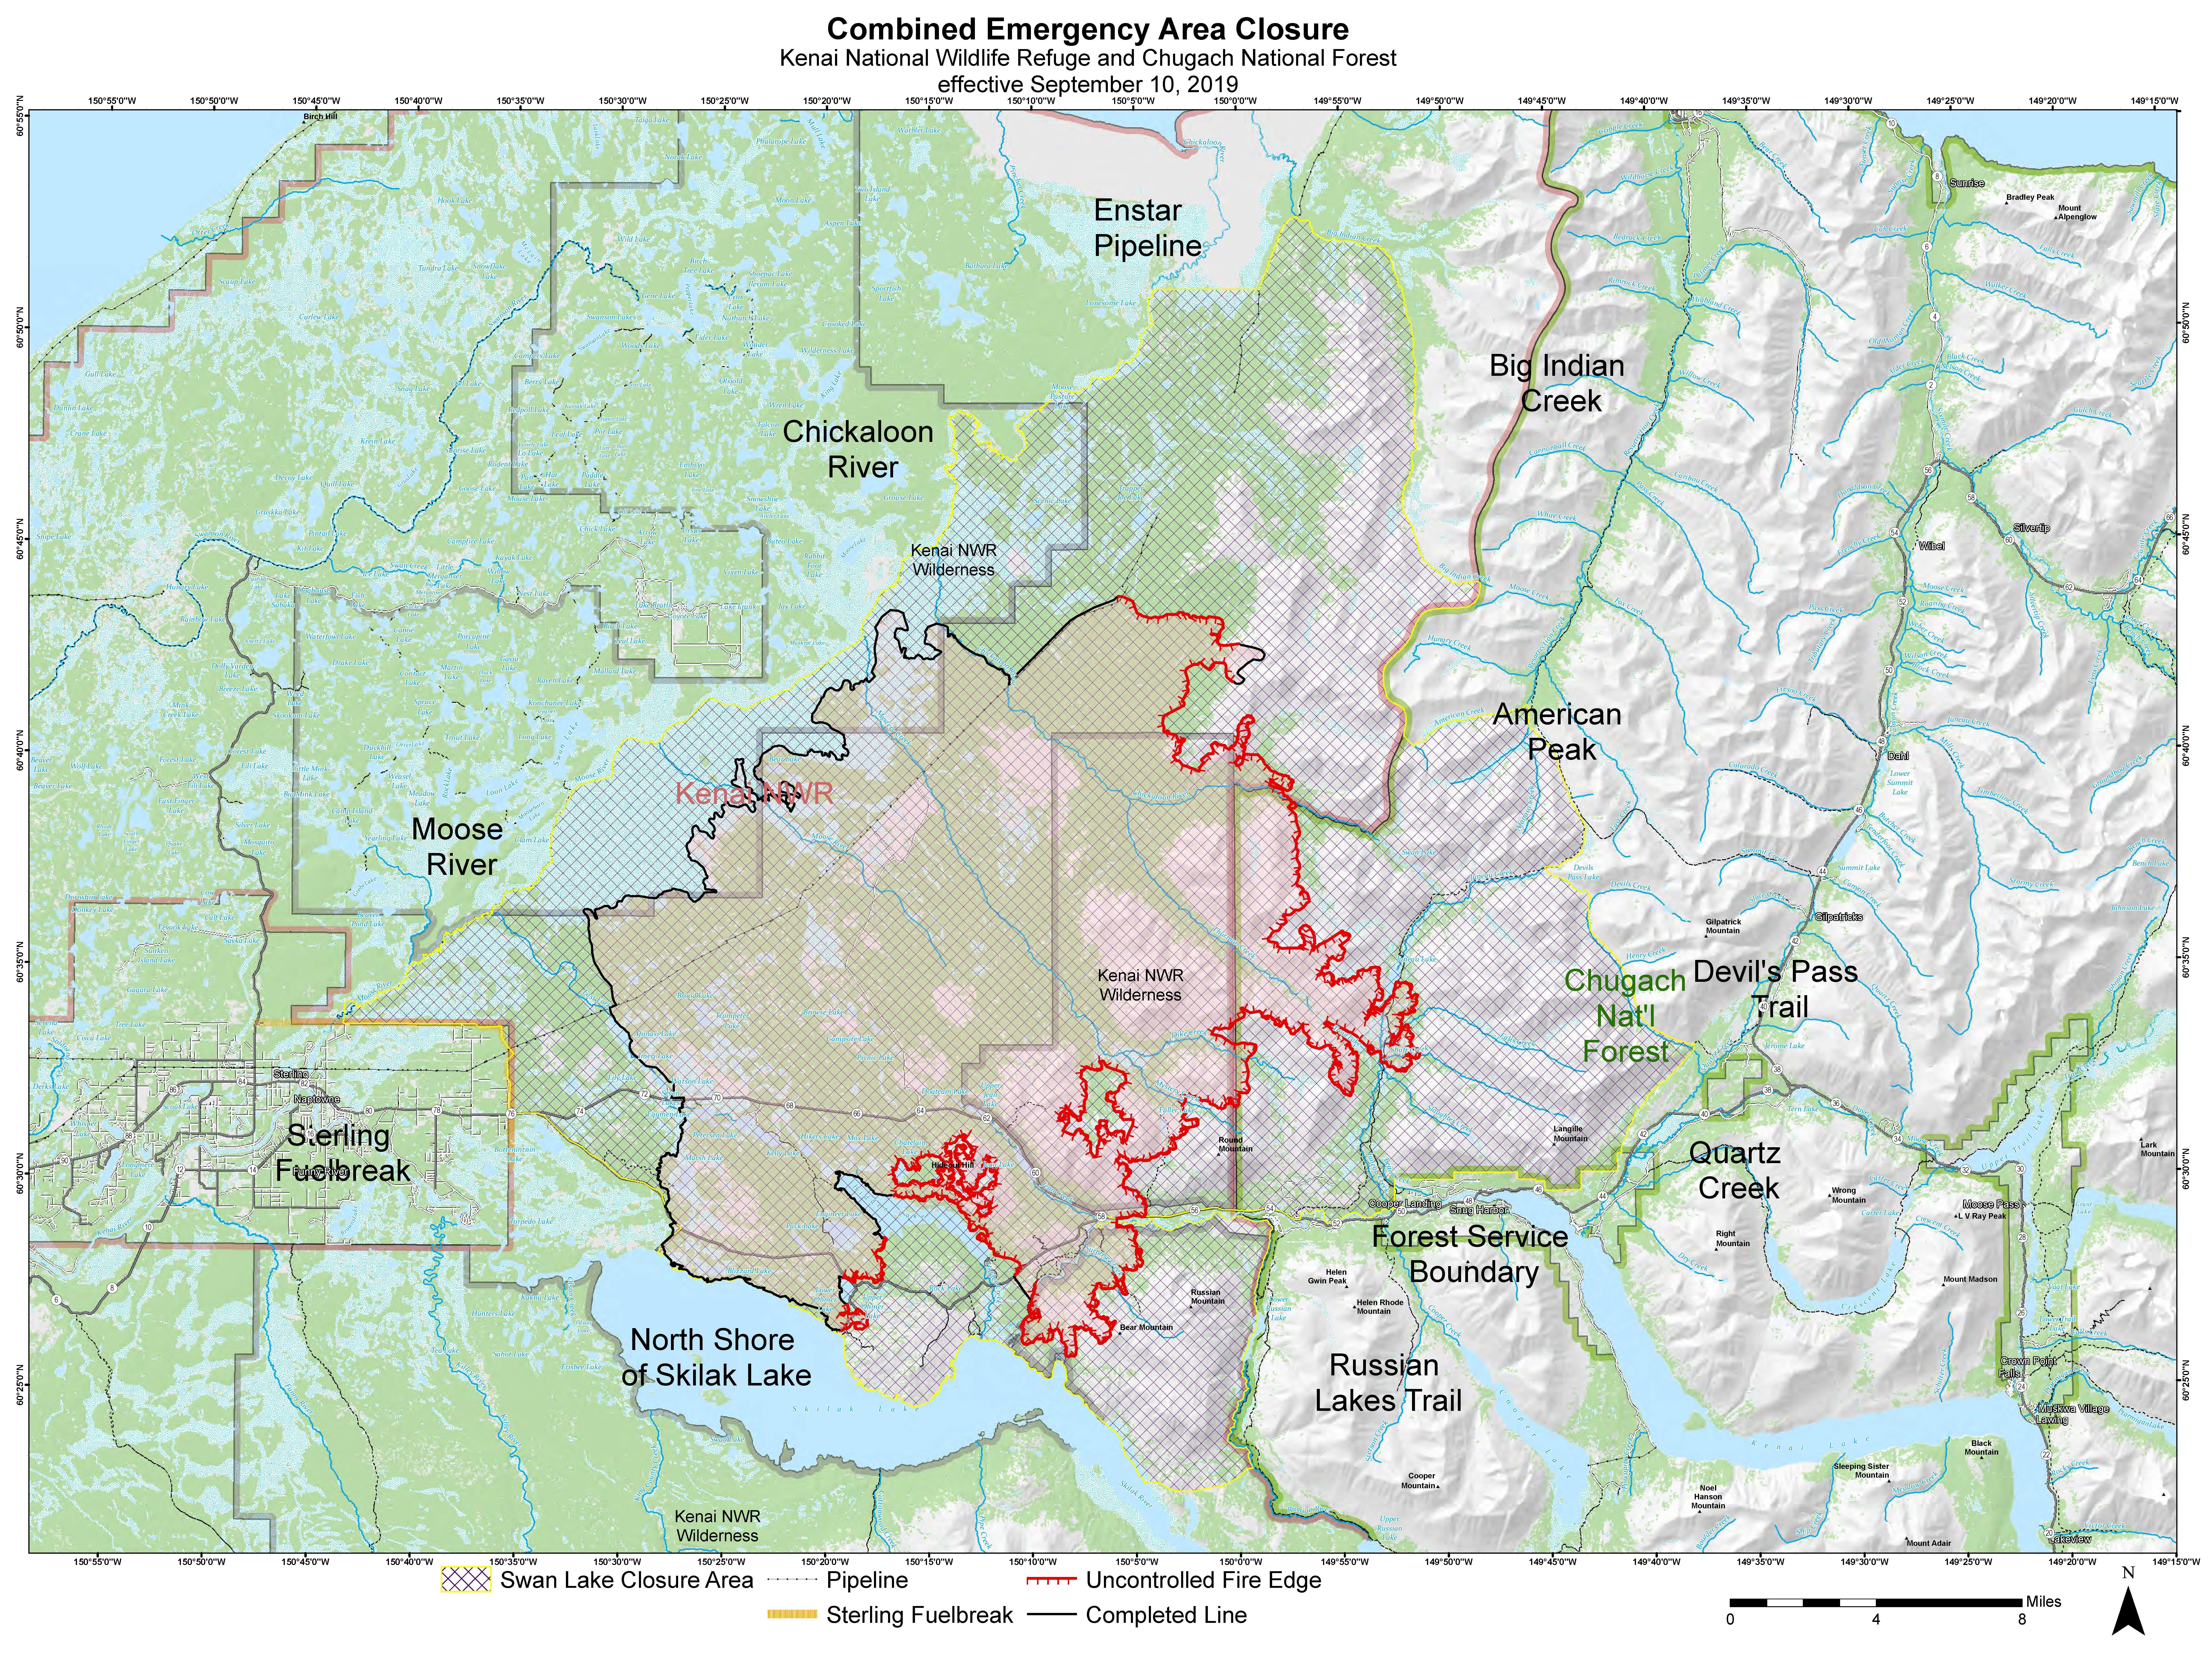 Combined Emergency Area Closure - effective Sept. 10, 2019